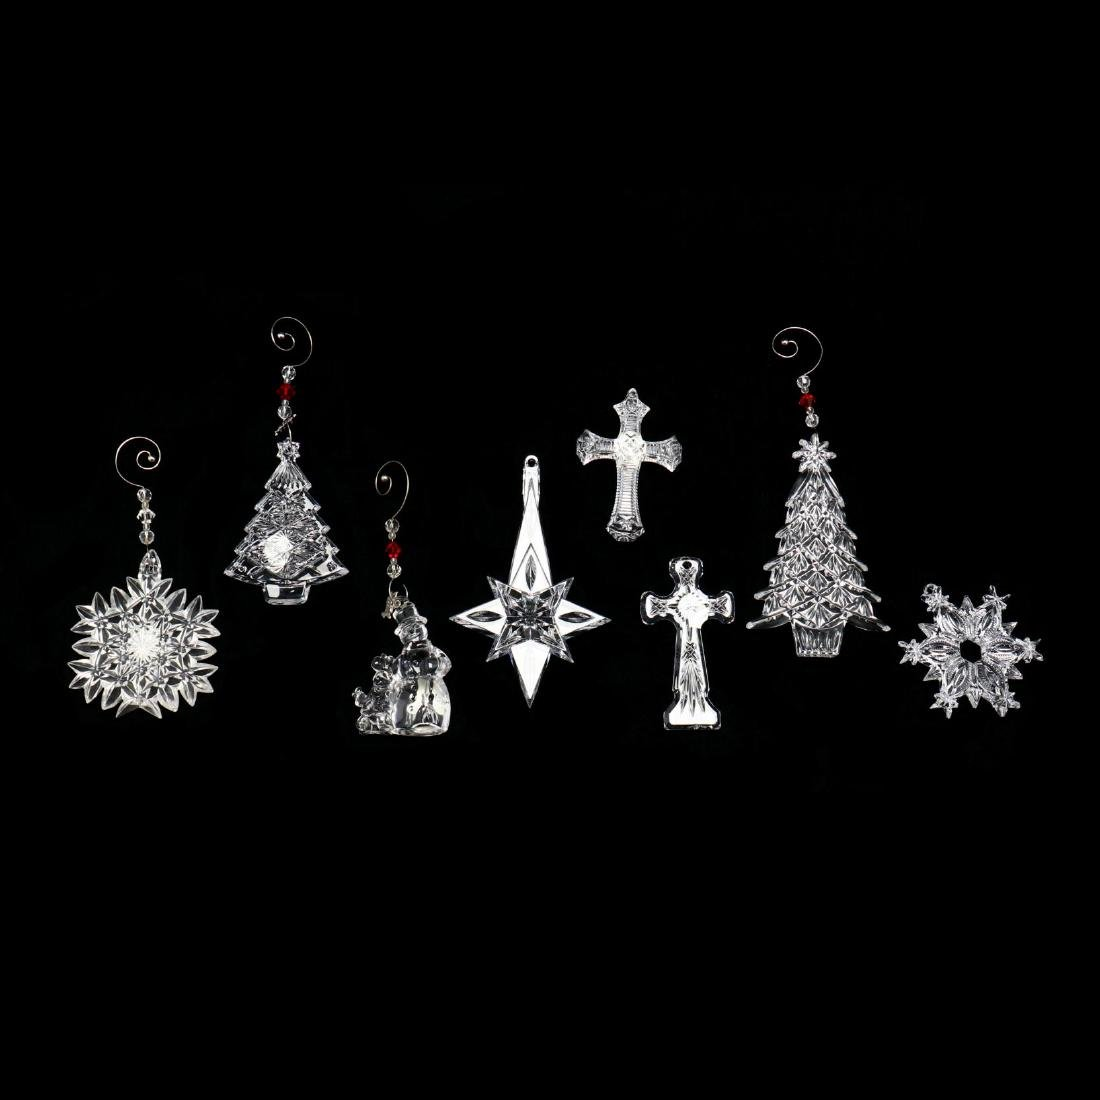 A Collection of Eight Waterford Crystal Christmas